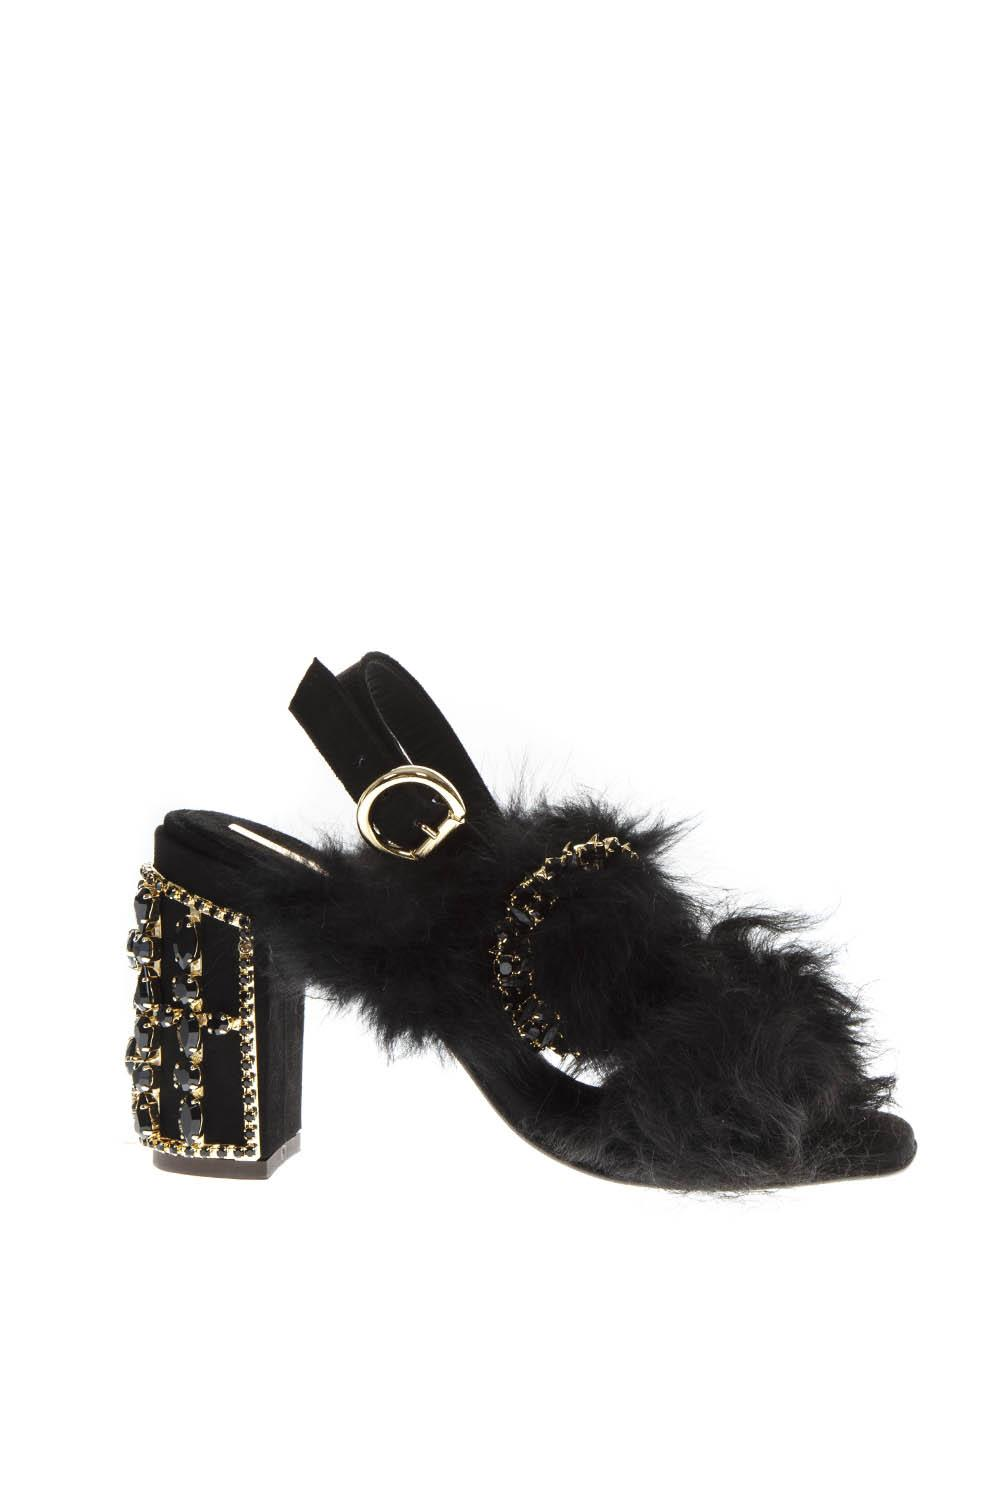 d705a4033cb EMBELLISHED BLACK FUR SANDALS FW 2018 - EMANUELA CARUSO CAPRI - Boutique  Galiano